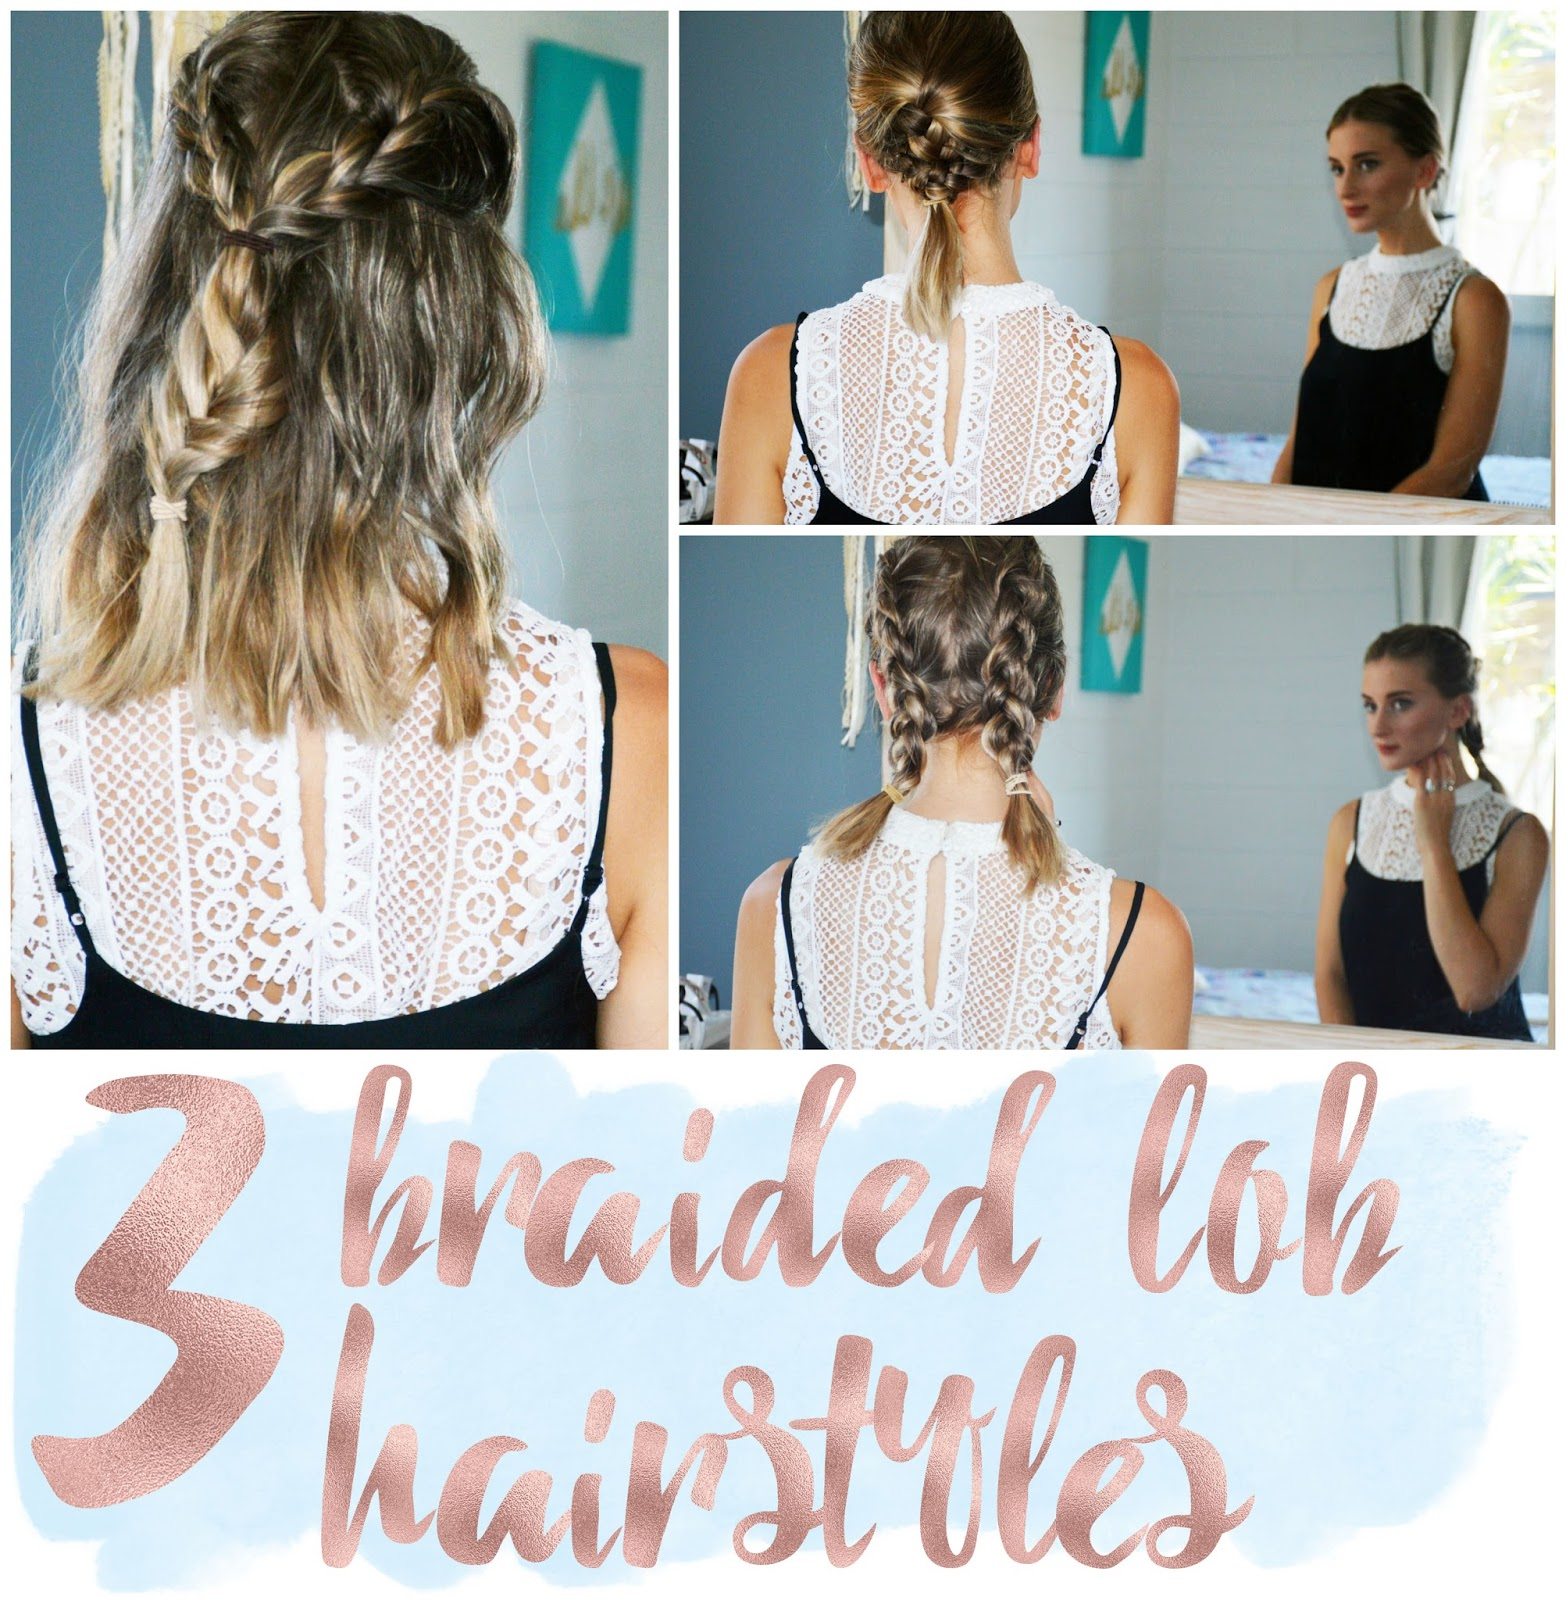 3 Braided Hairstyles For A Lob Or Mid Length Hair The